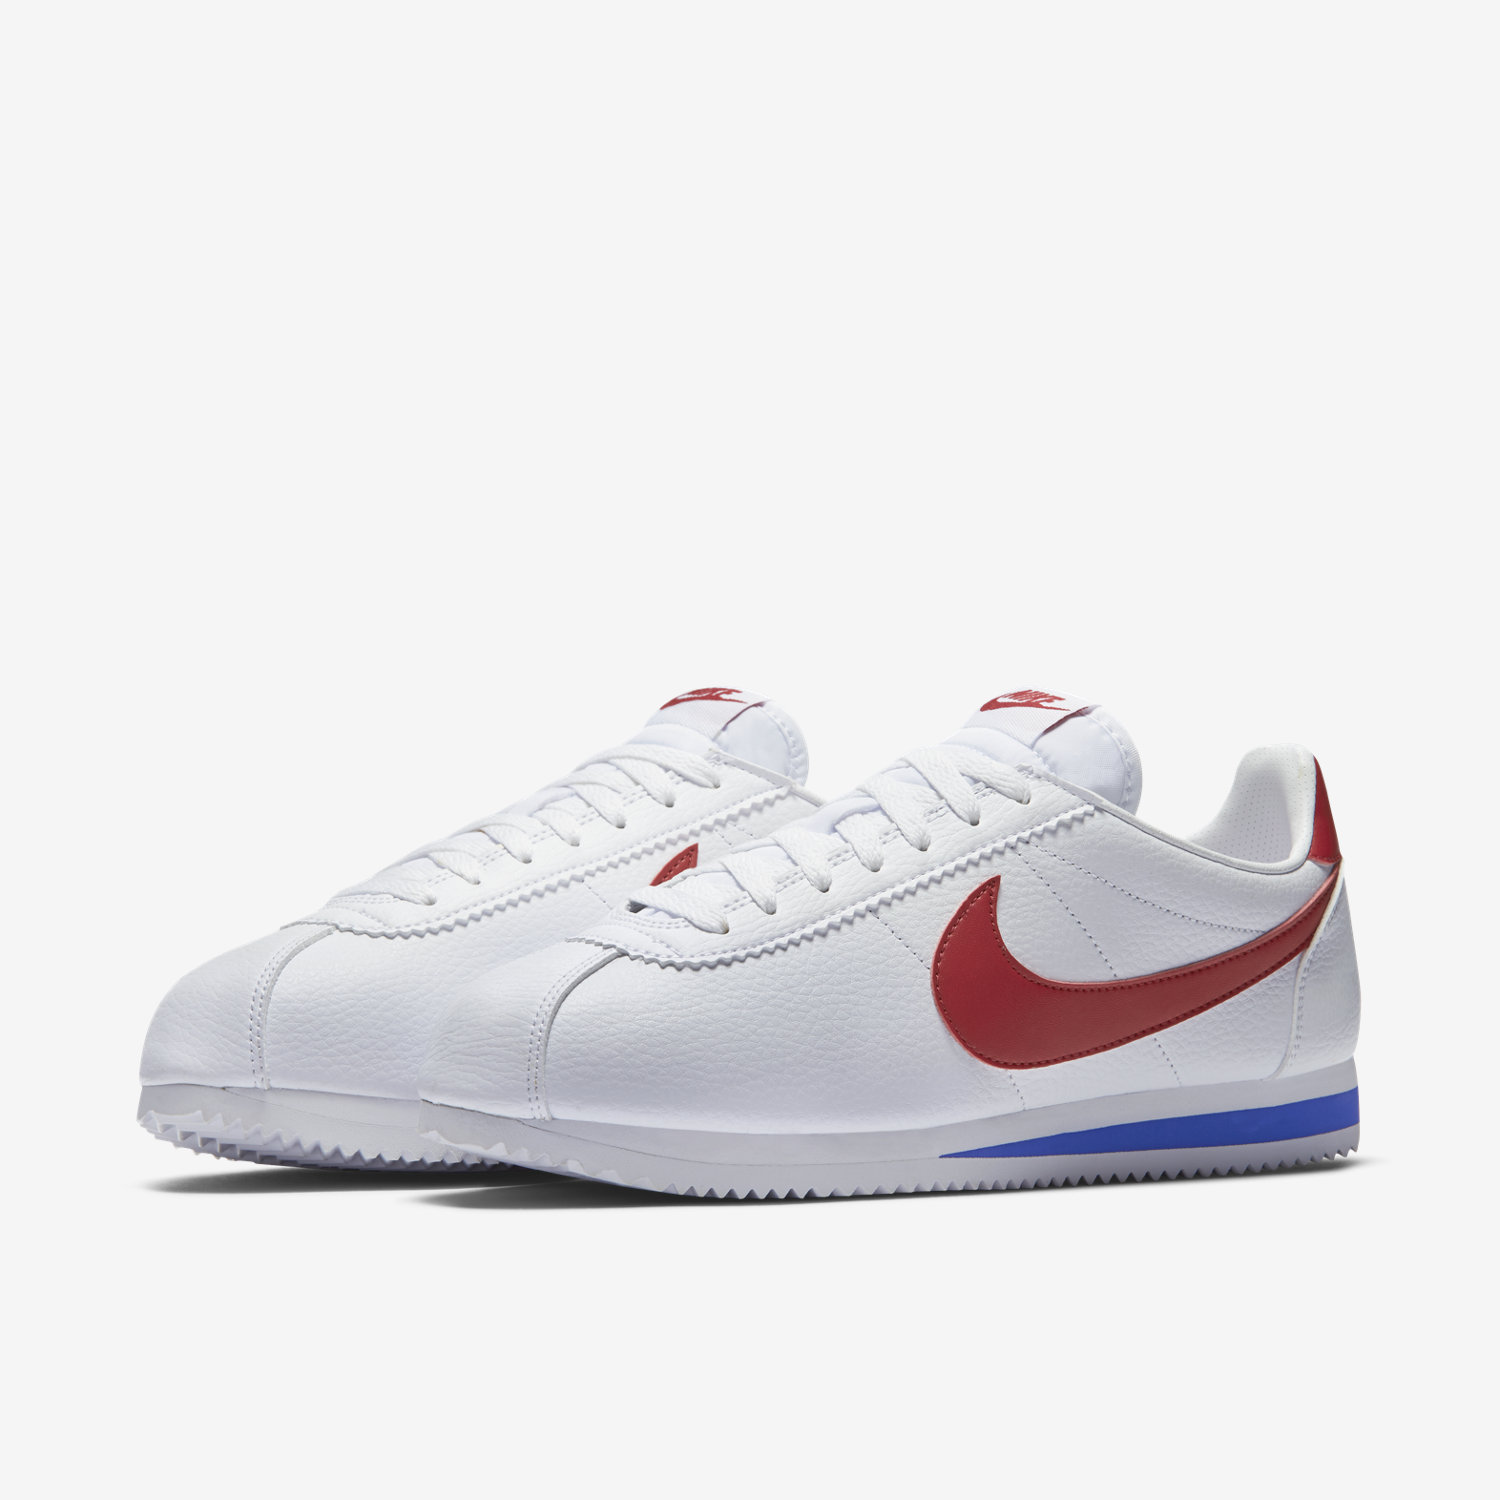 Nike Cortez Usa Basket Leather Leather acheter White xBorCeWd